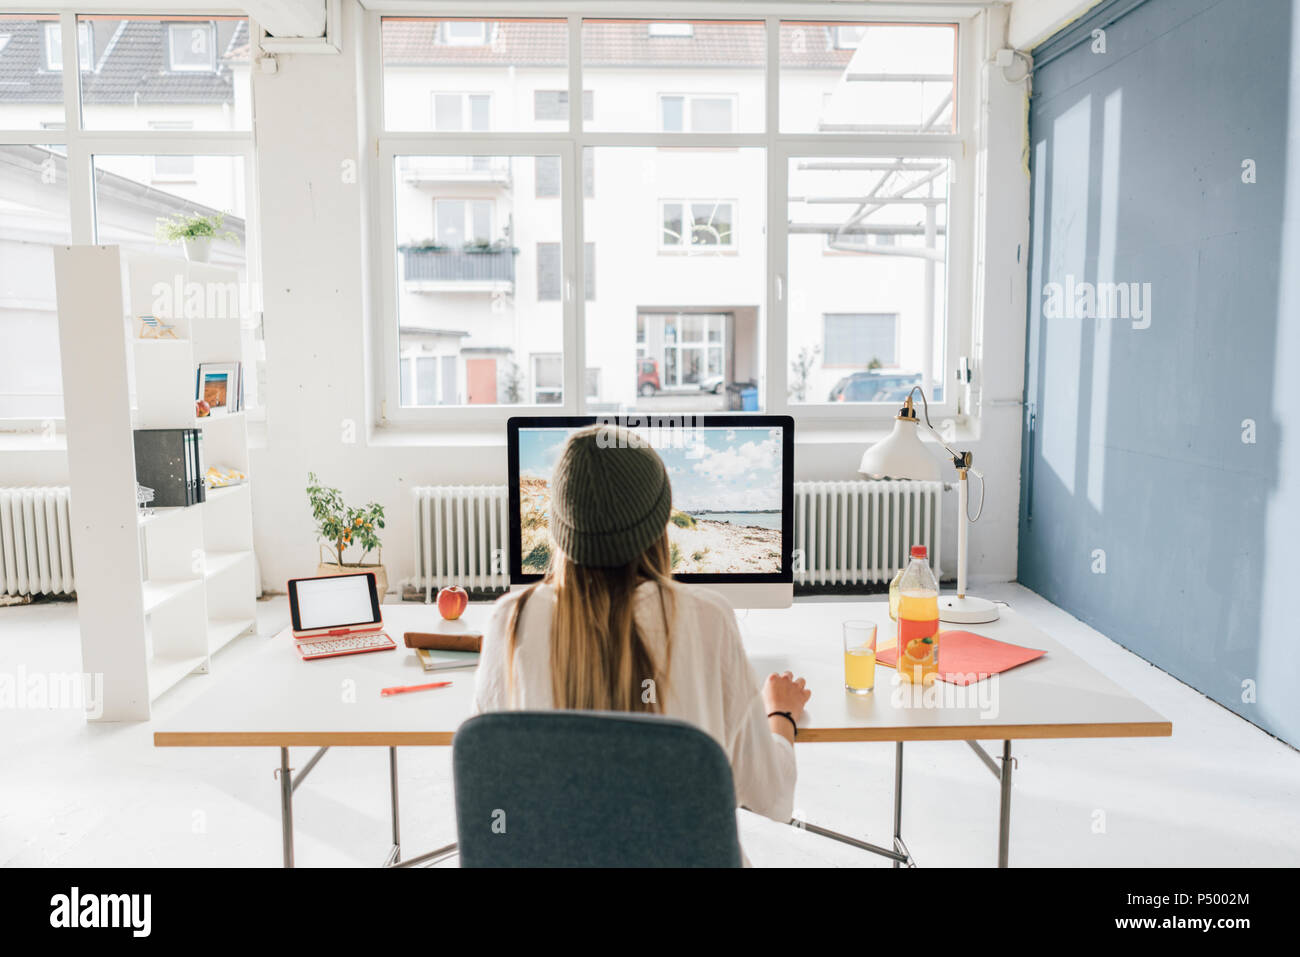 Back view of freelancer working at desk in a loft - Stock Image